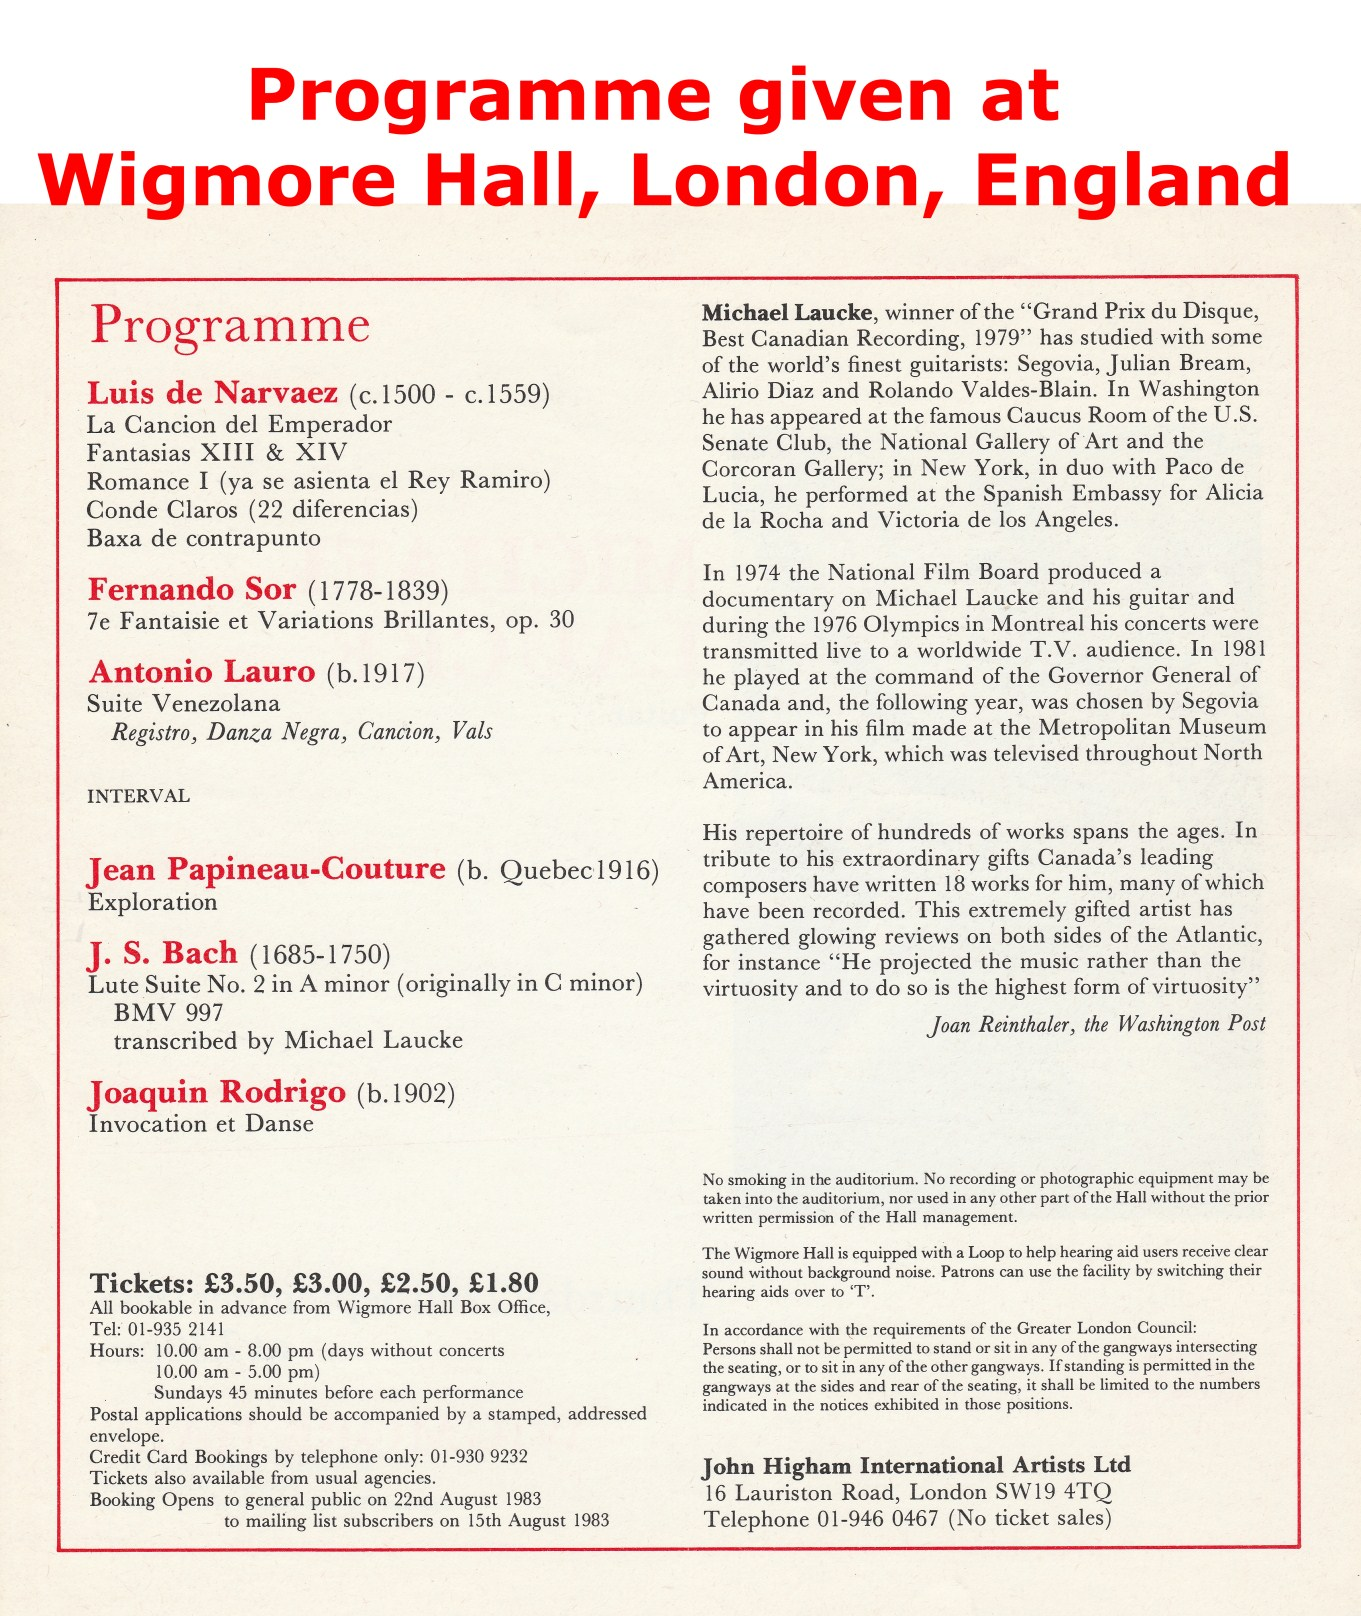 Given at Wigmore Hall London England""